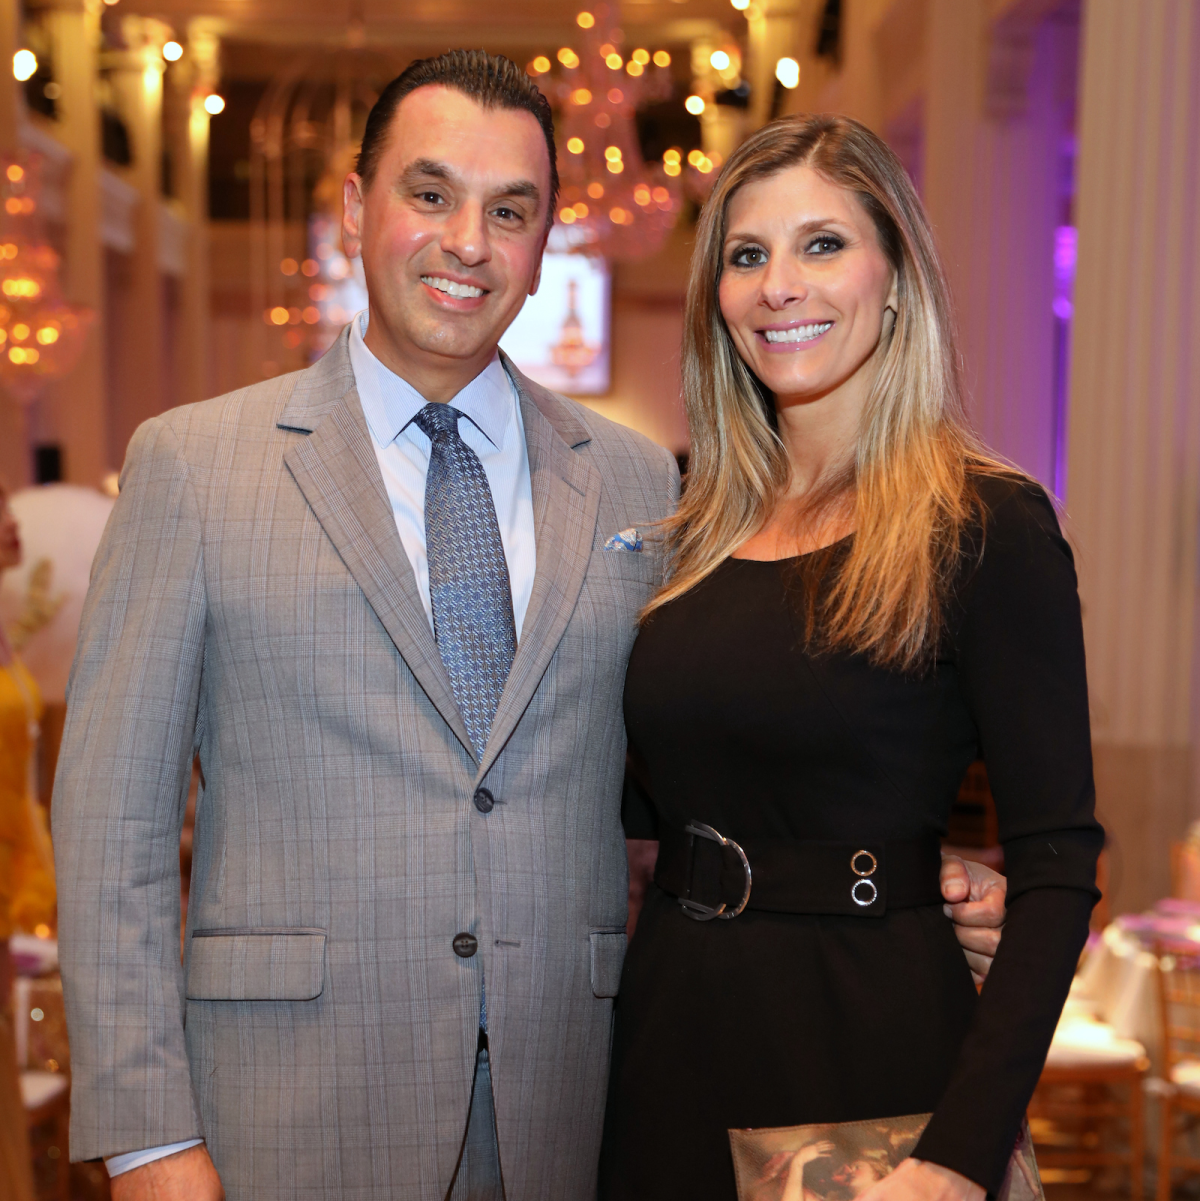 Houston, March of Dimes Signature Chefs, November 2017, Devinder Bhatia, Gina Bhatia